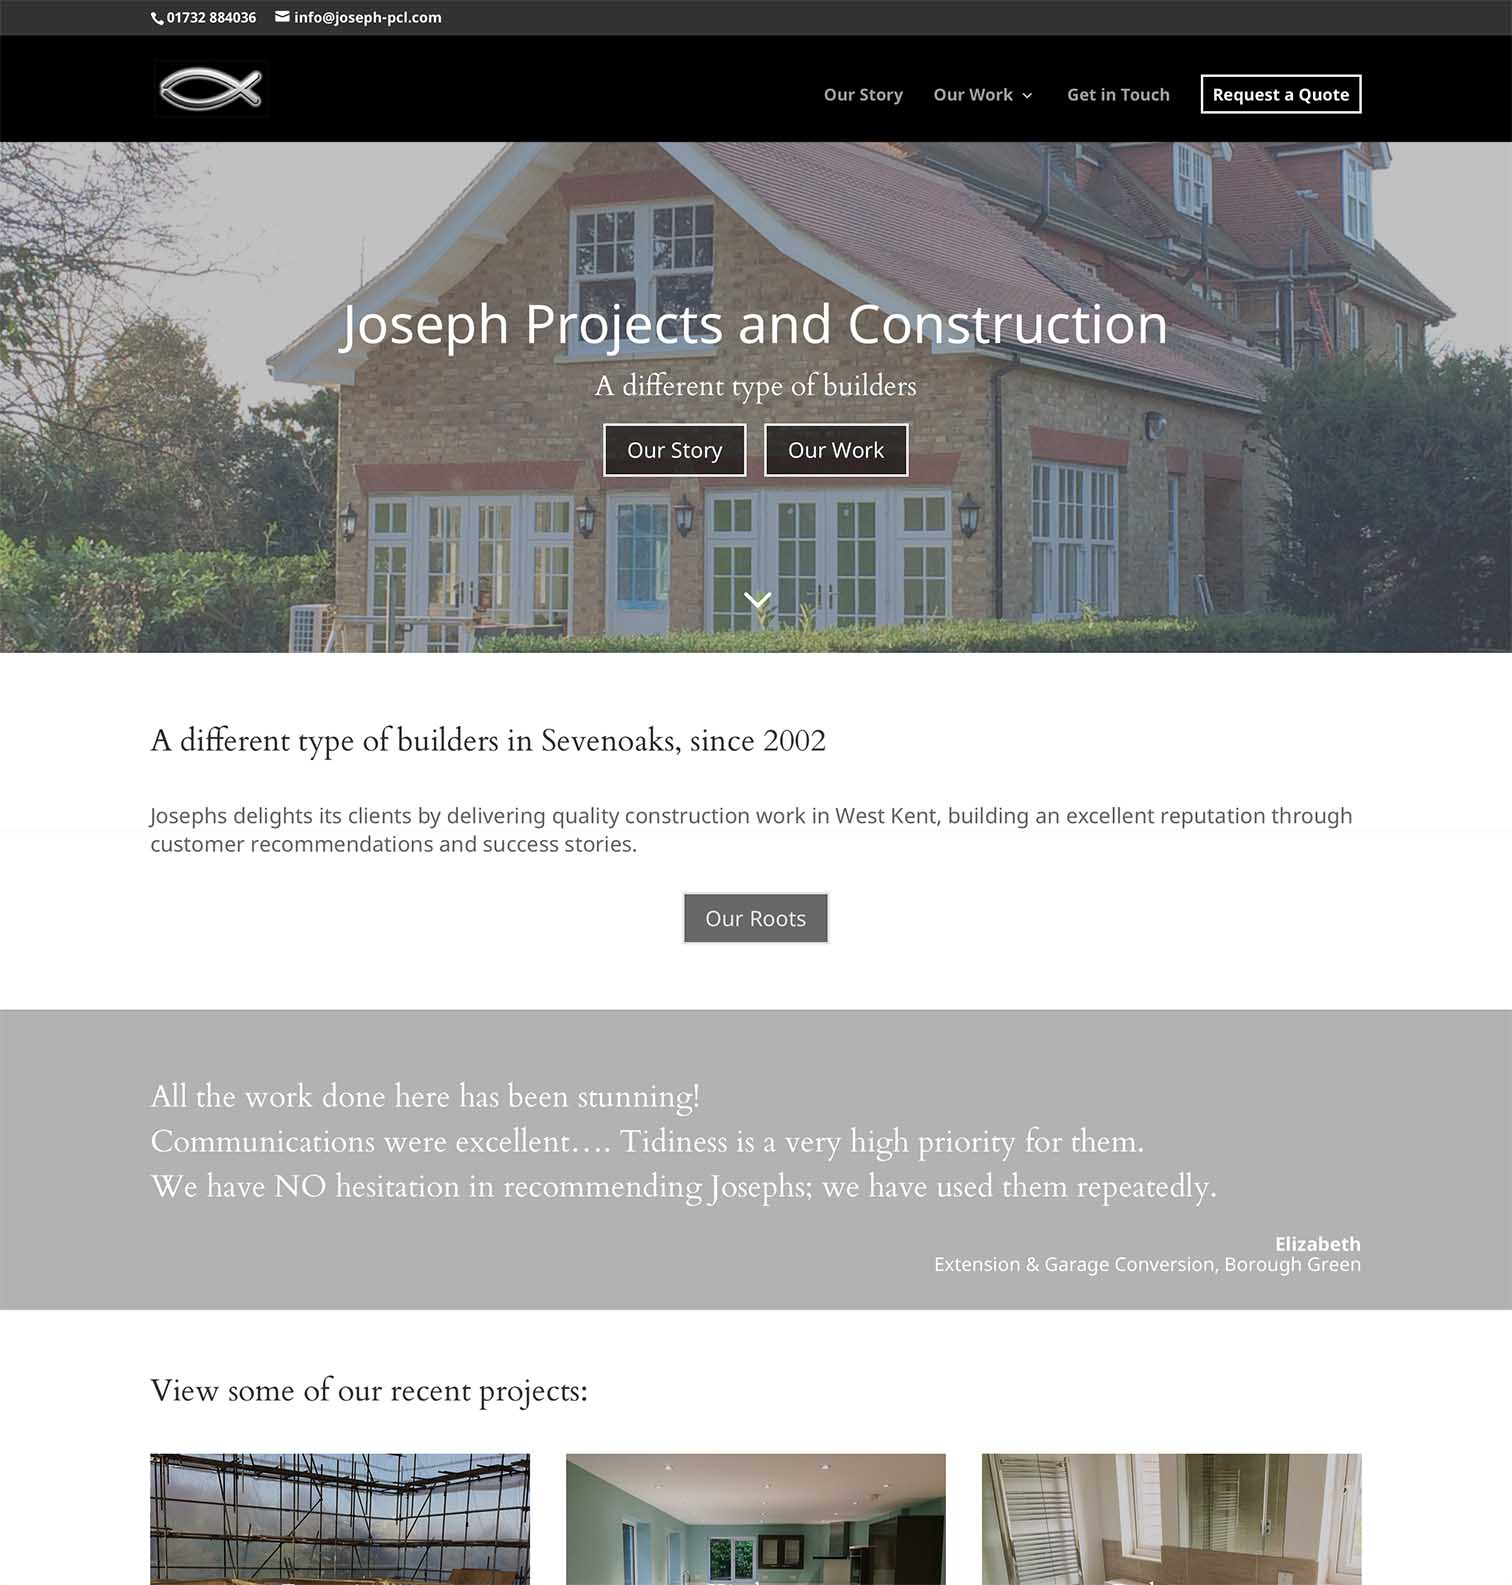 Josephs Builders Website in Sevenoaks Kent - Be Gallant Design